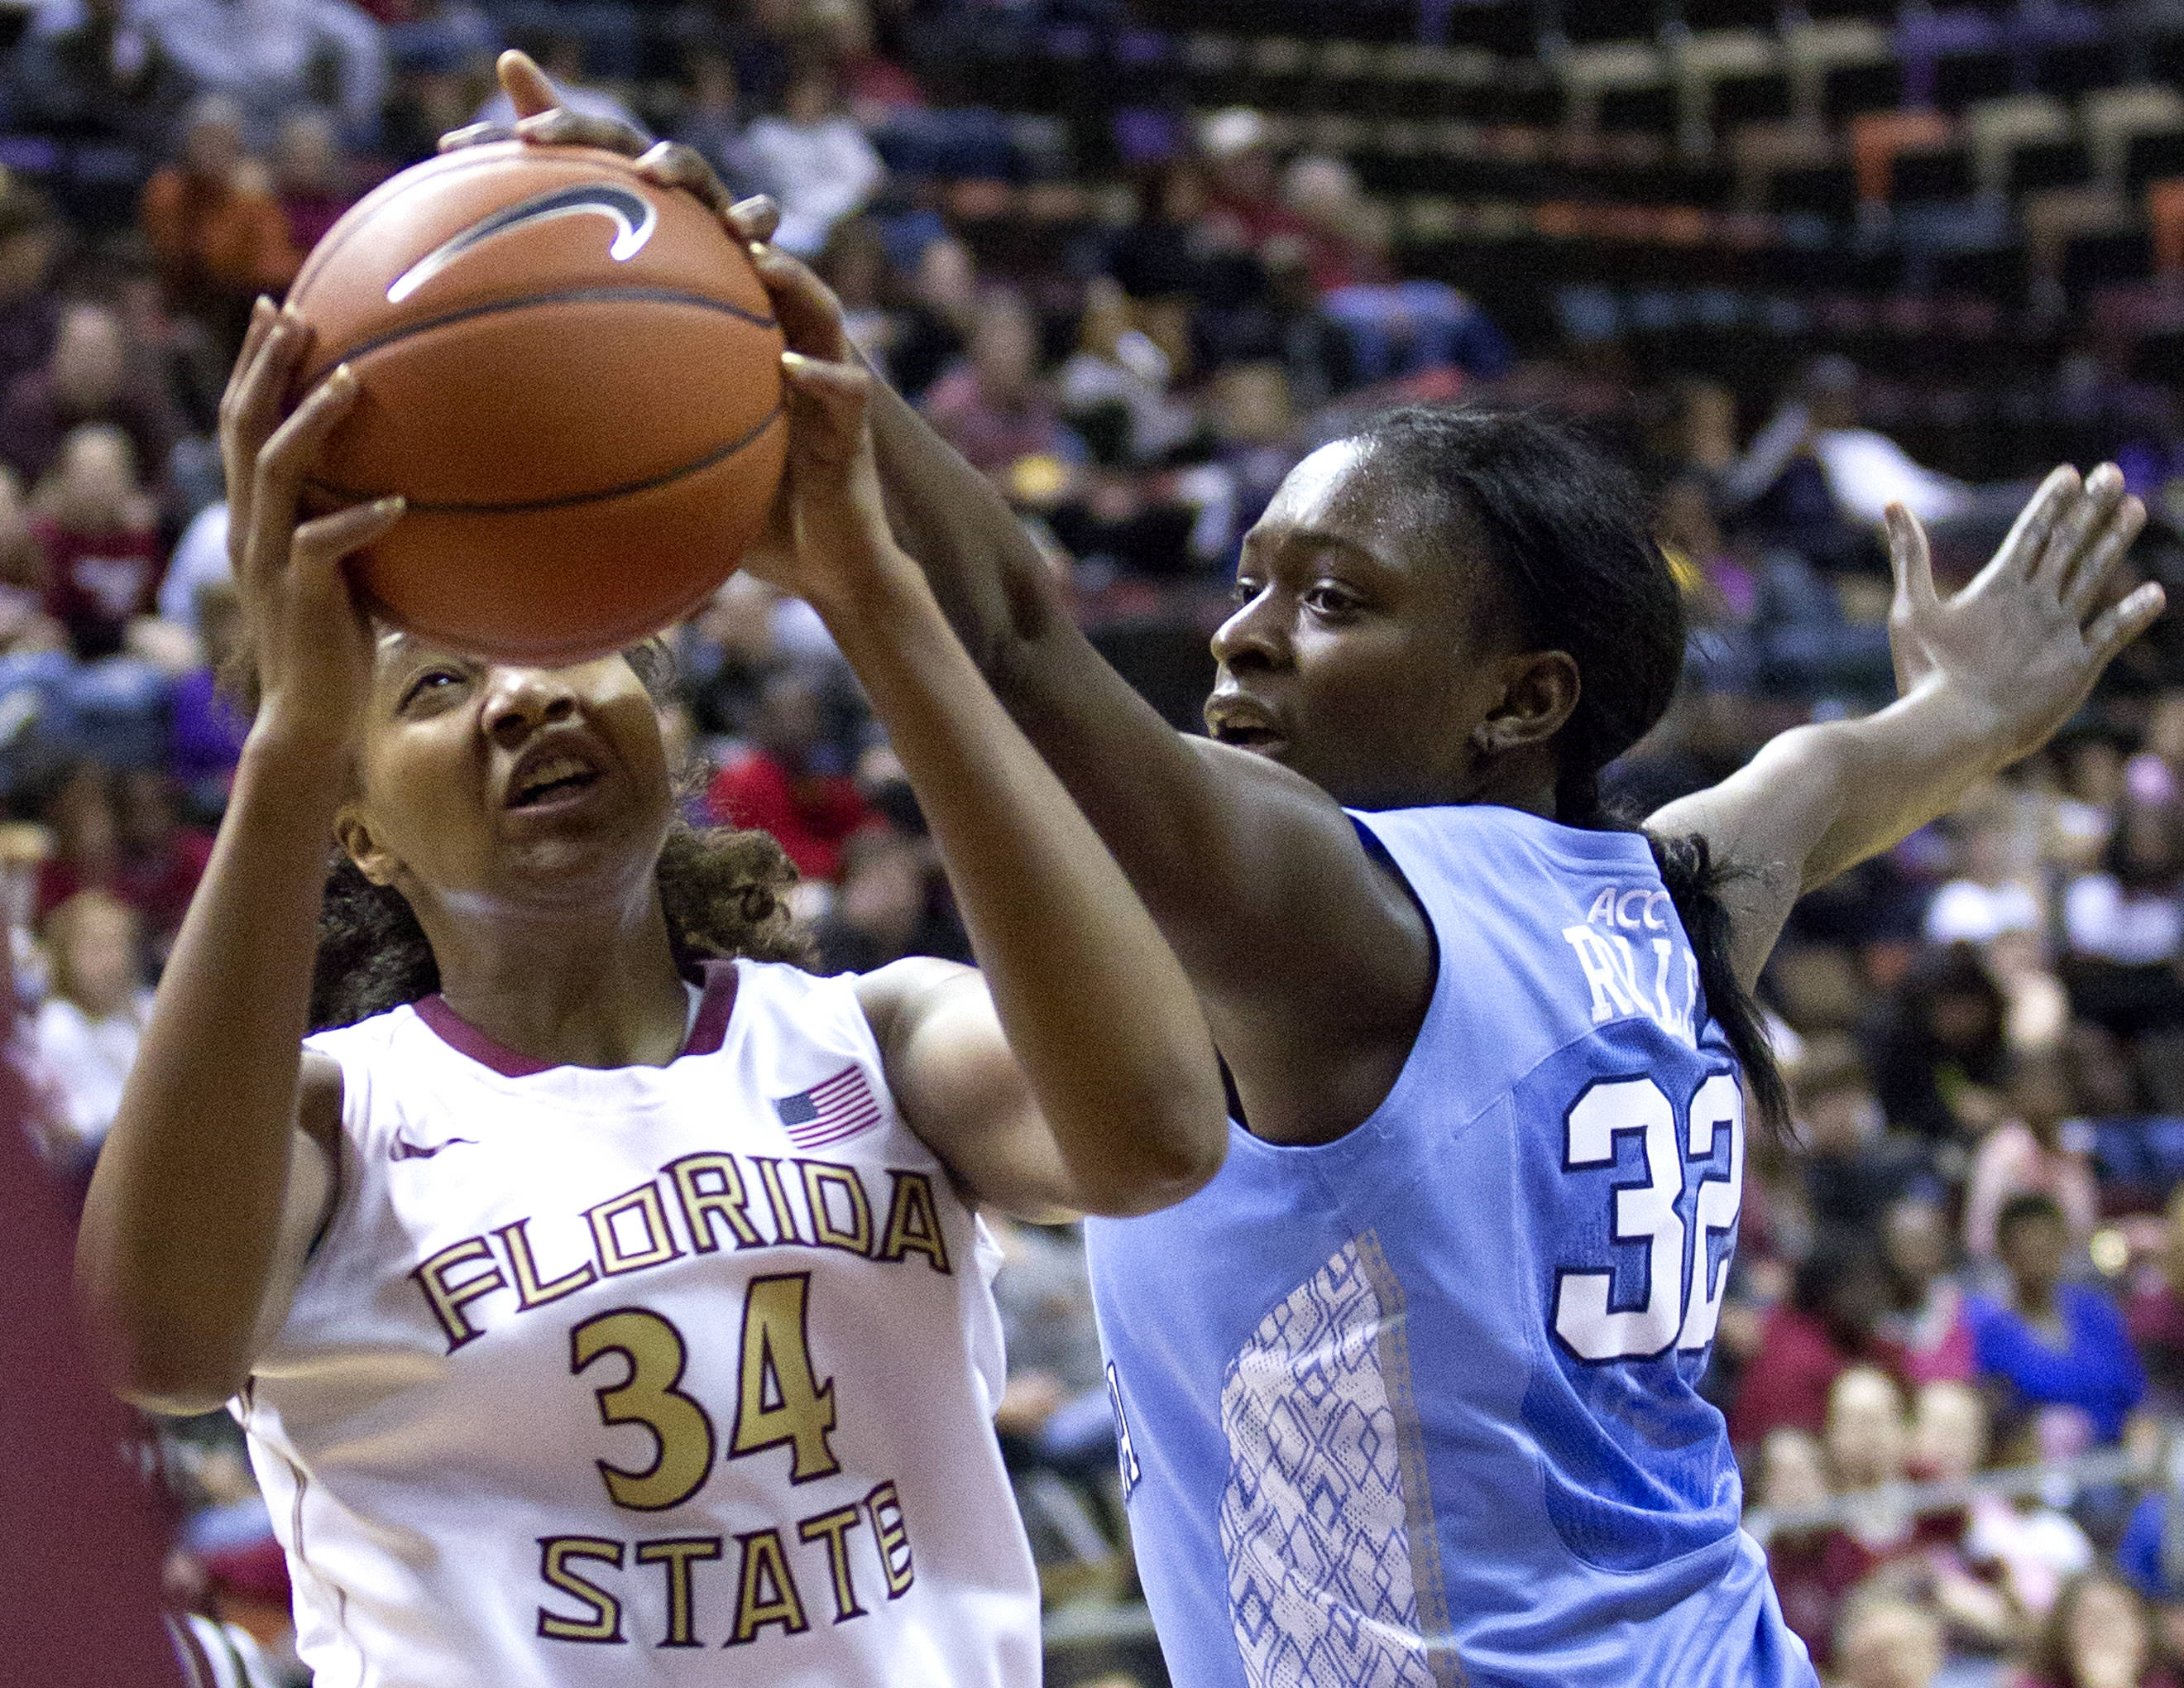 Chelsea Davis (34), FSU vs NC, 02/17/13. (Photo by Steve Musco)